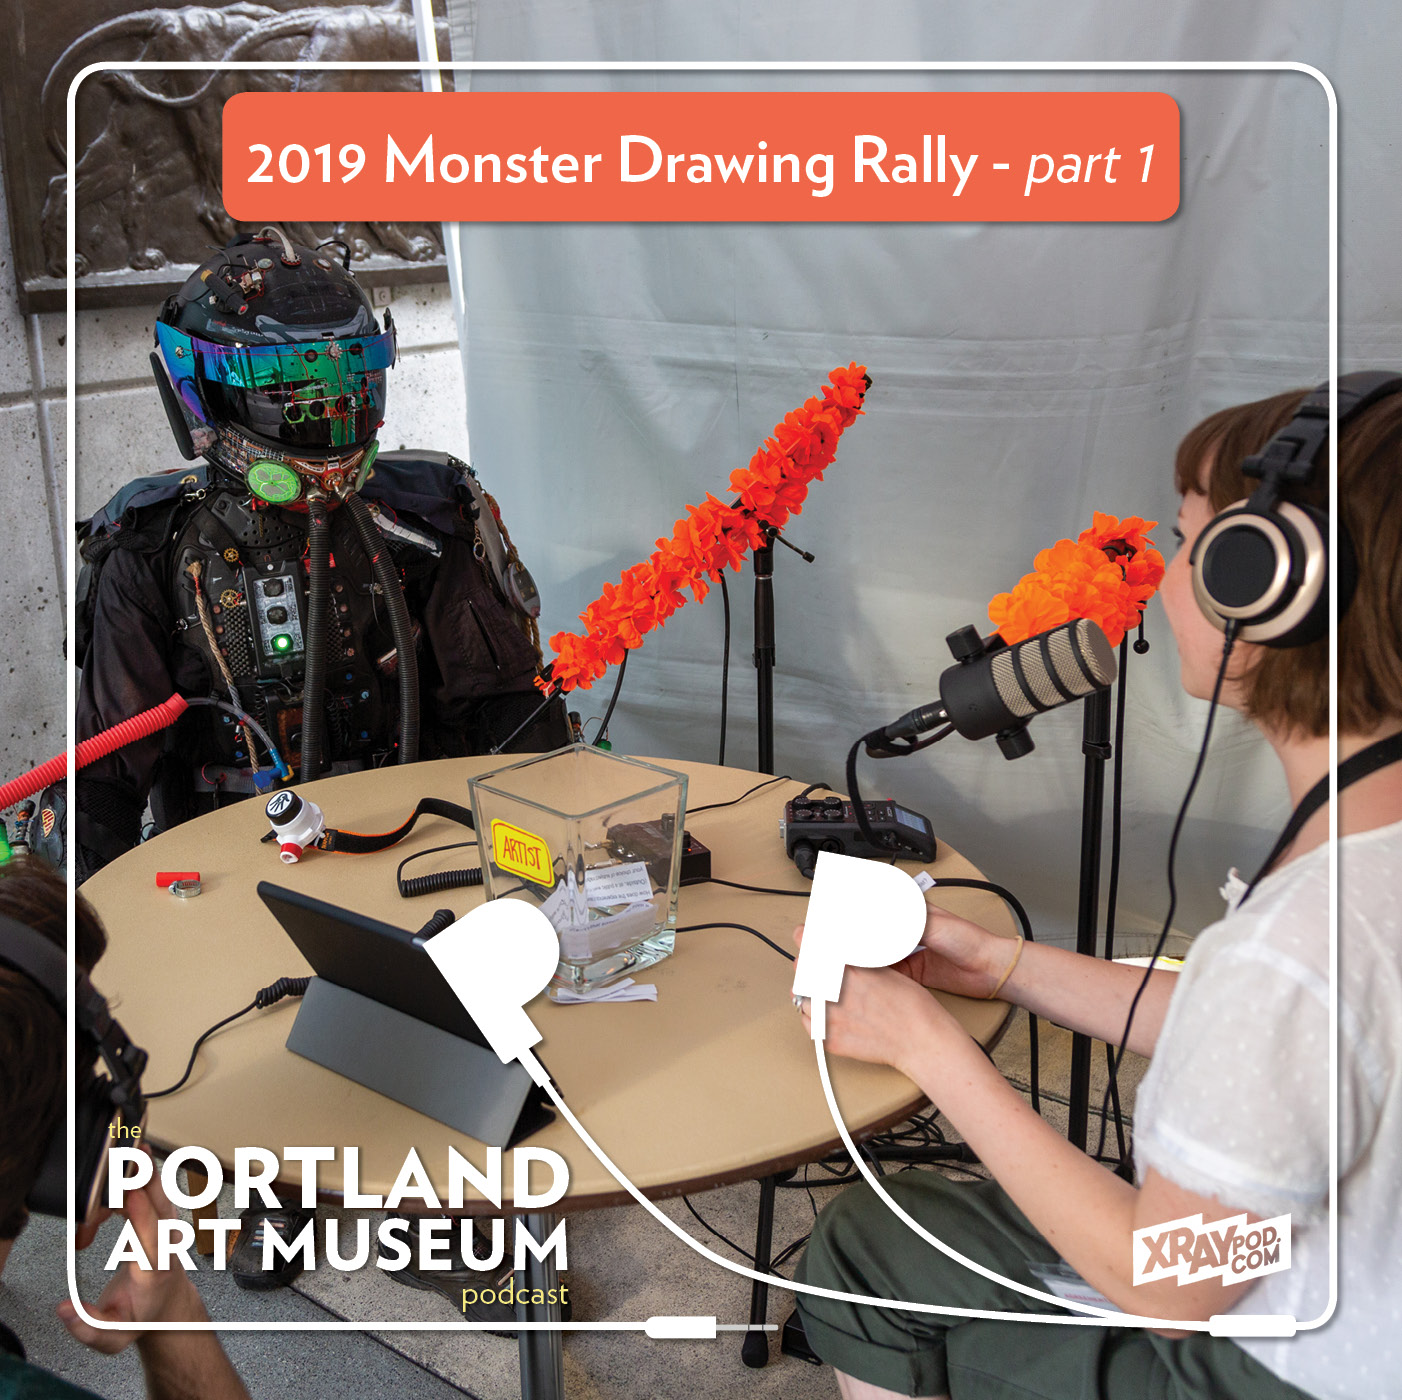 2019 Monster Drawing Rally – part 1